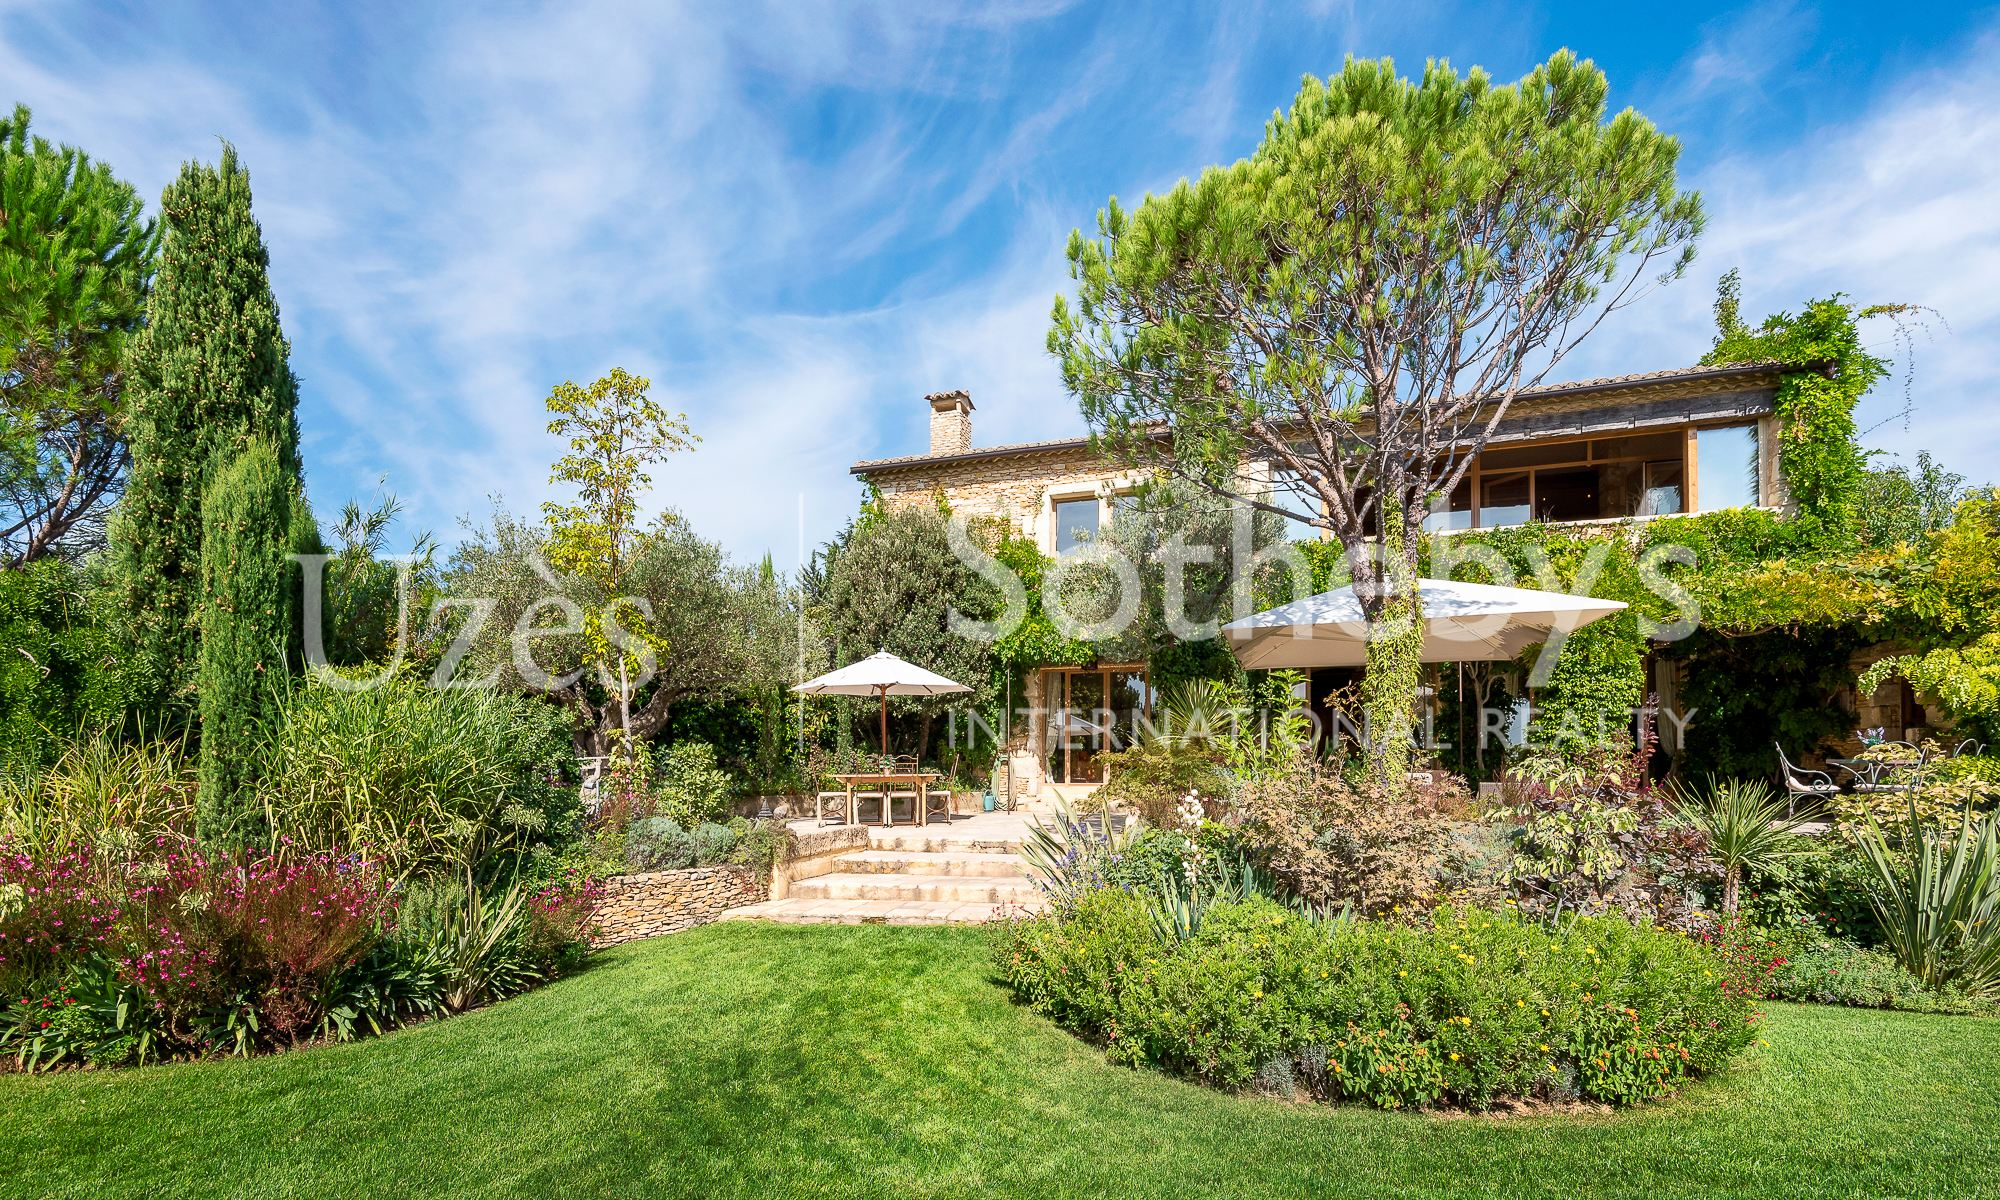 Property For Sale at Uzes - 5 min Breathtaking property